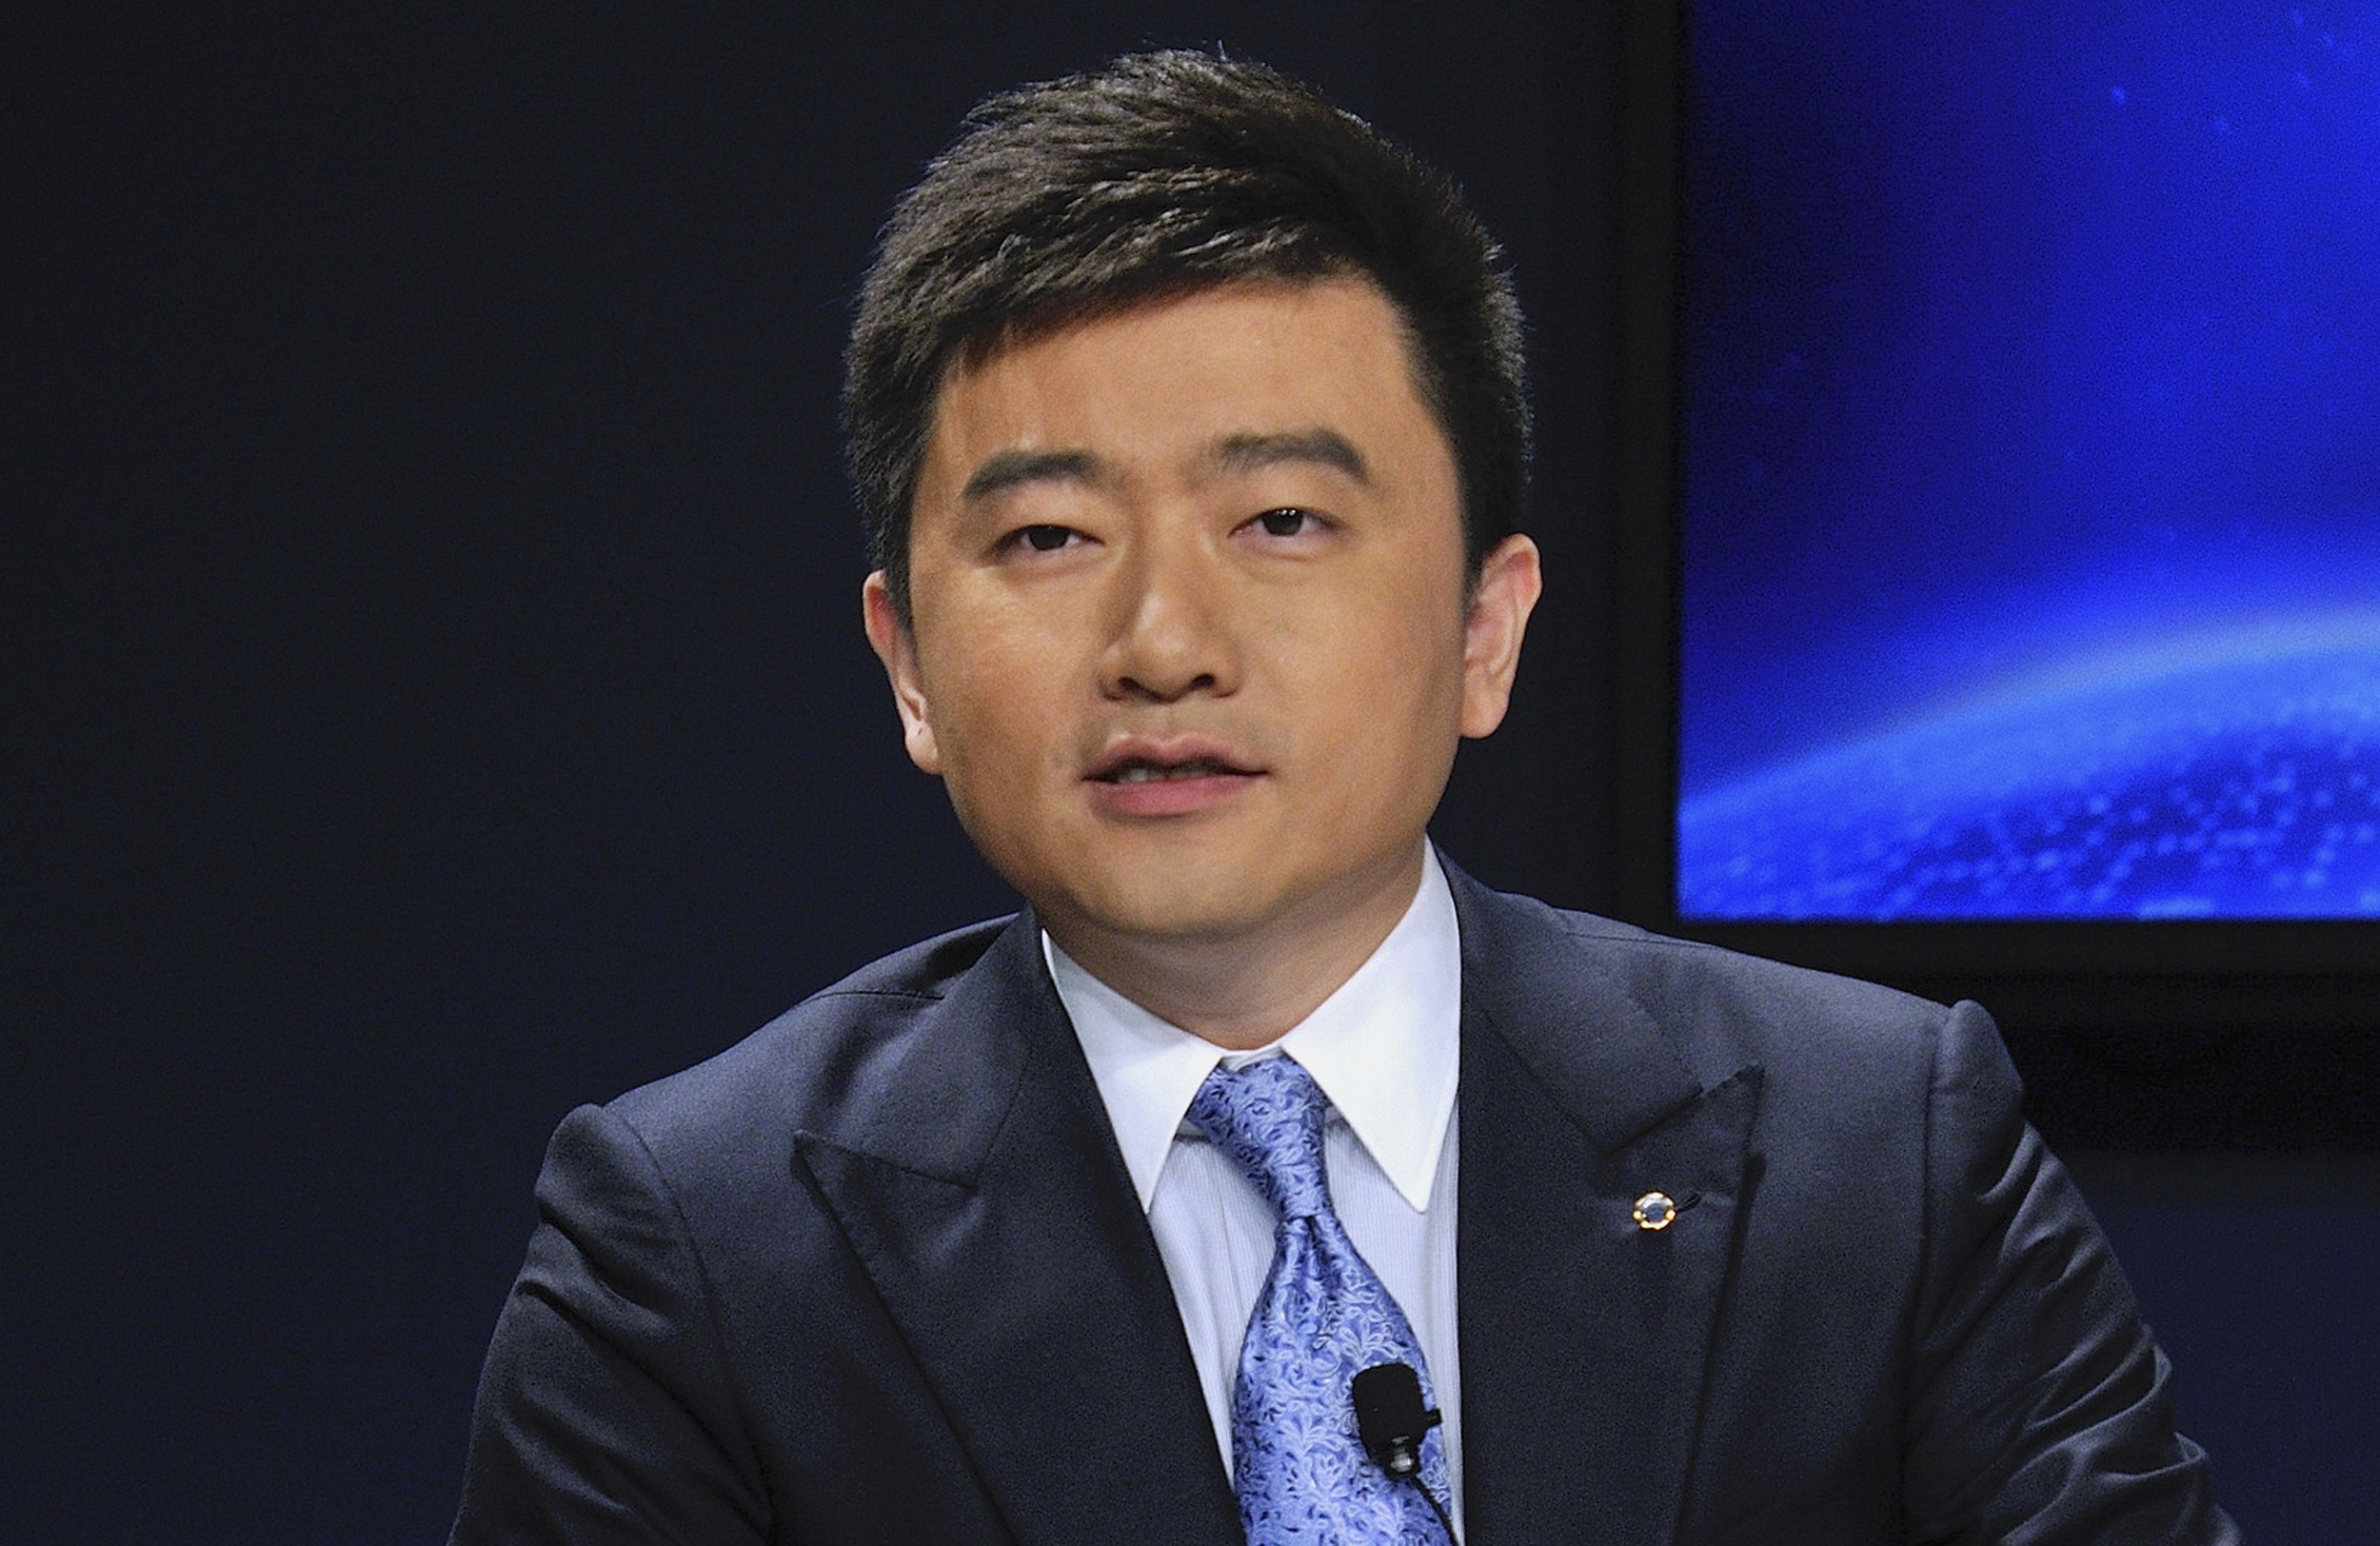 China Central Television (CCTV) host Rui Chenggang was detained by police as authorities launch an anti-corruption campaign into China's media.